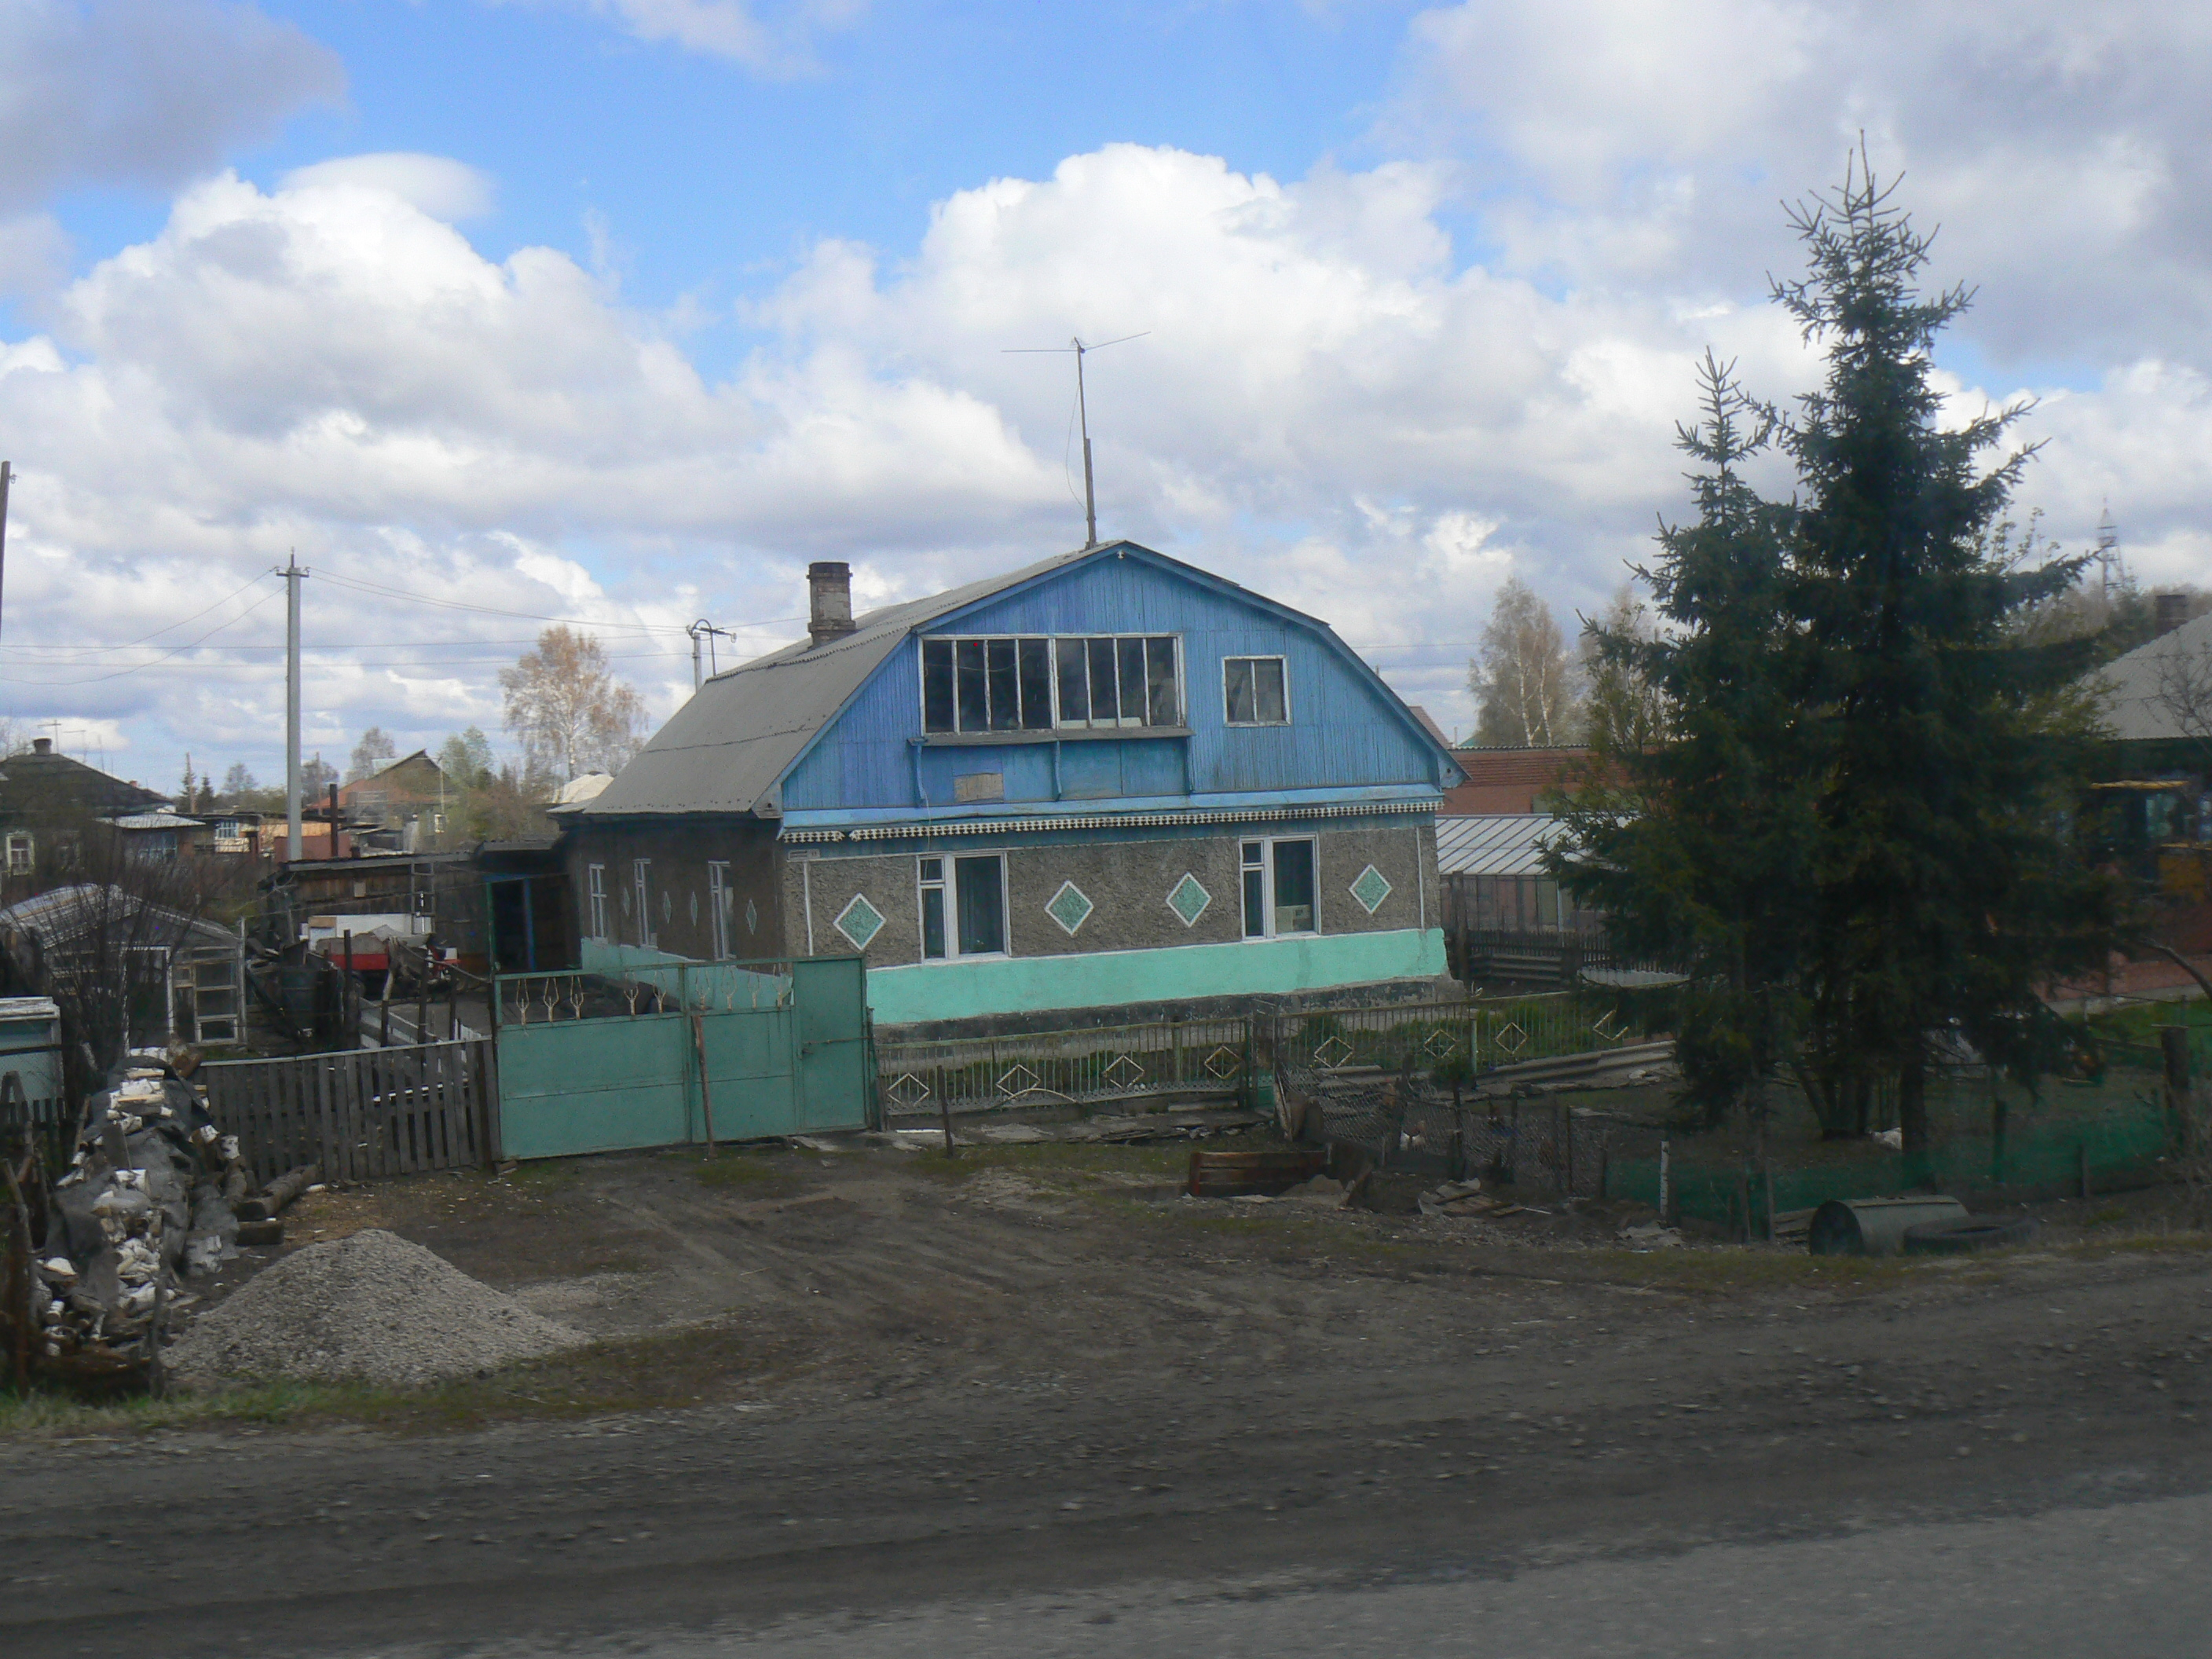 Route Moscow - Tomsk: how to get there, what to see in Tomsk